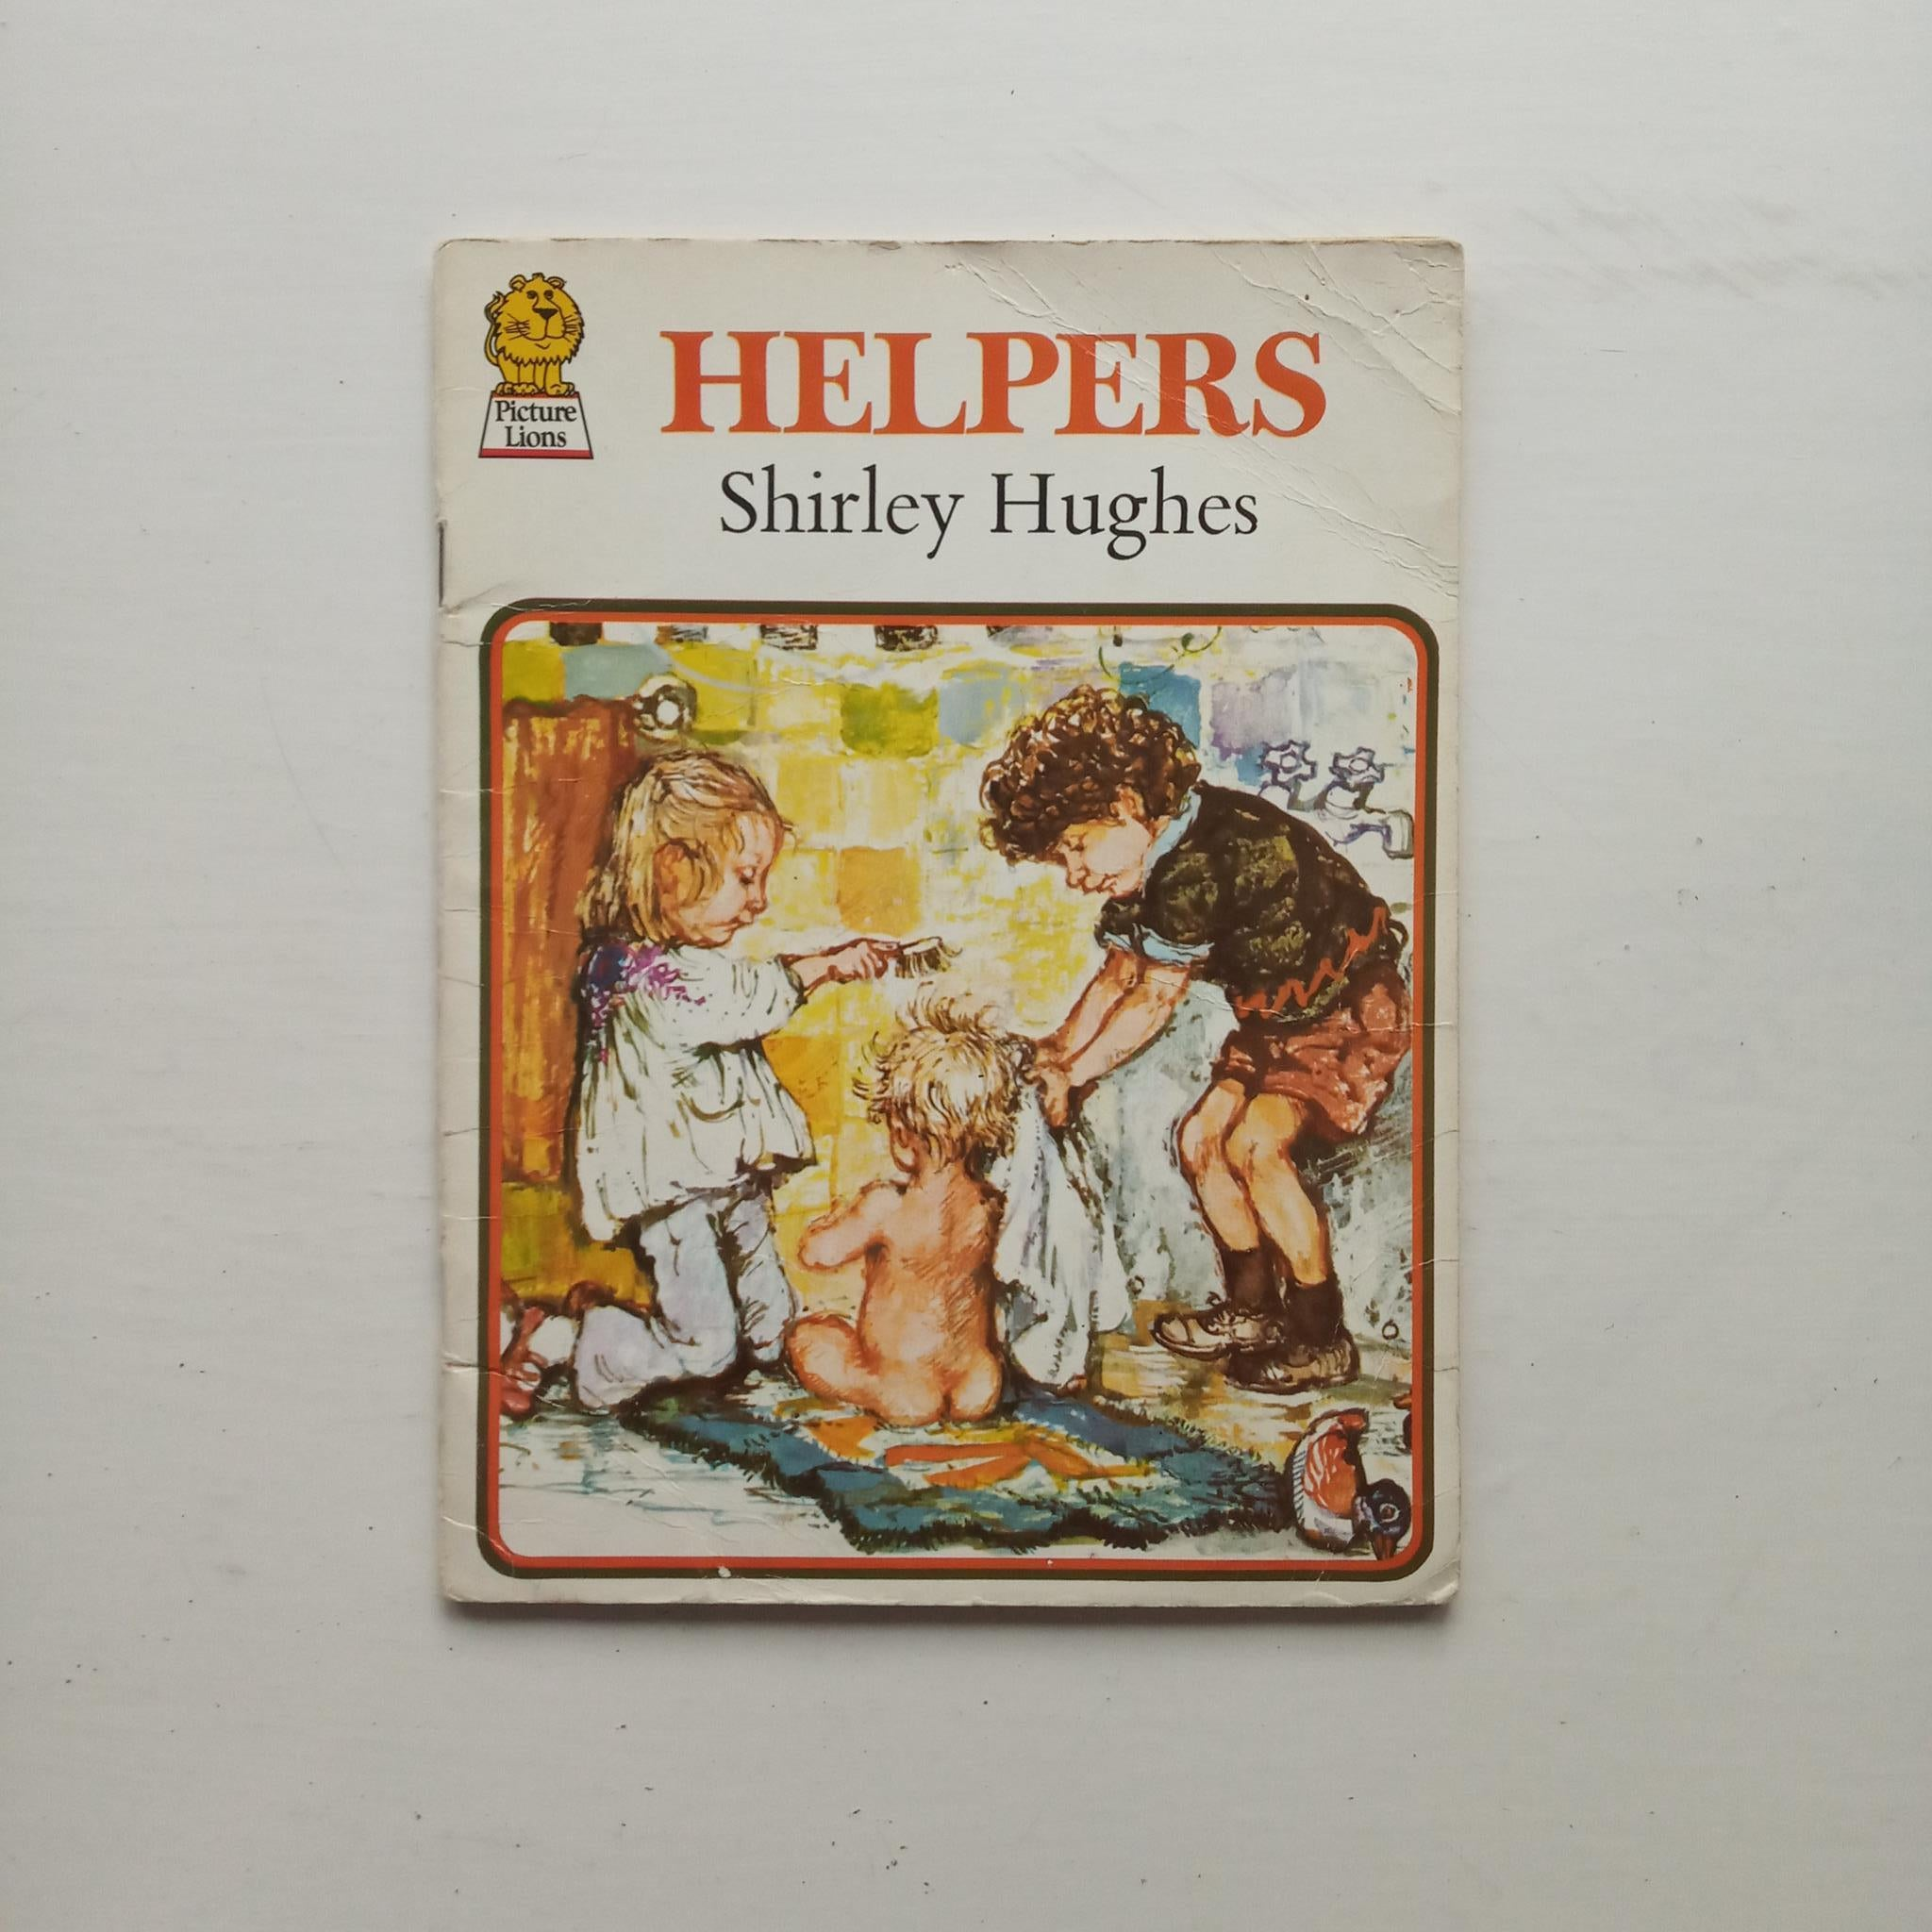 Helpers by Shirley Hughes